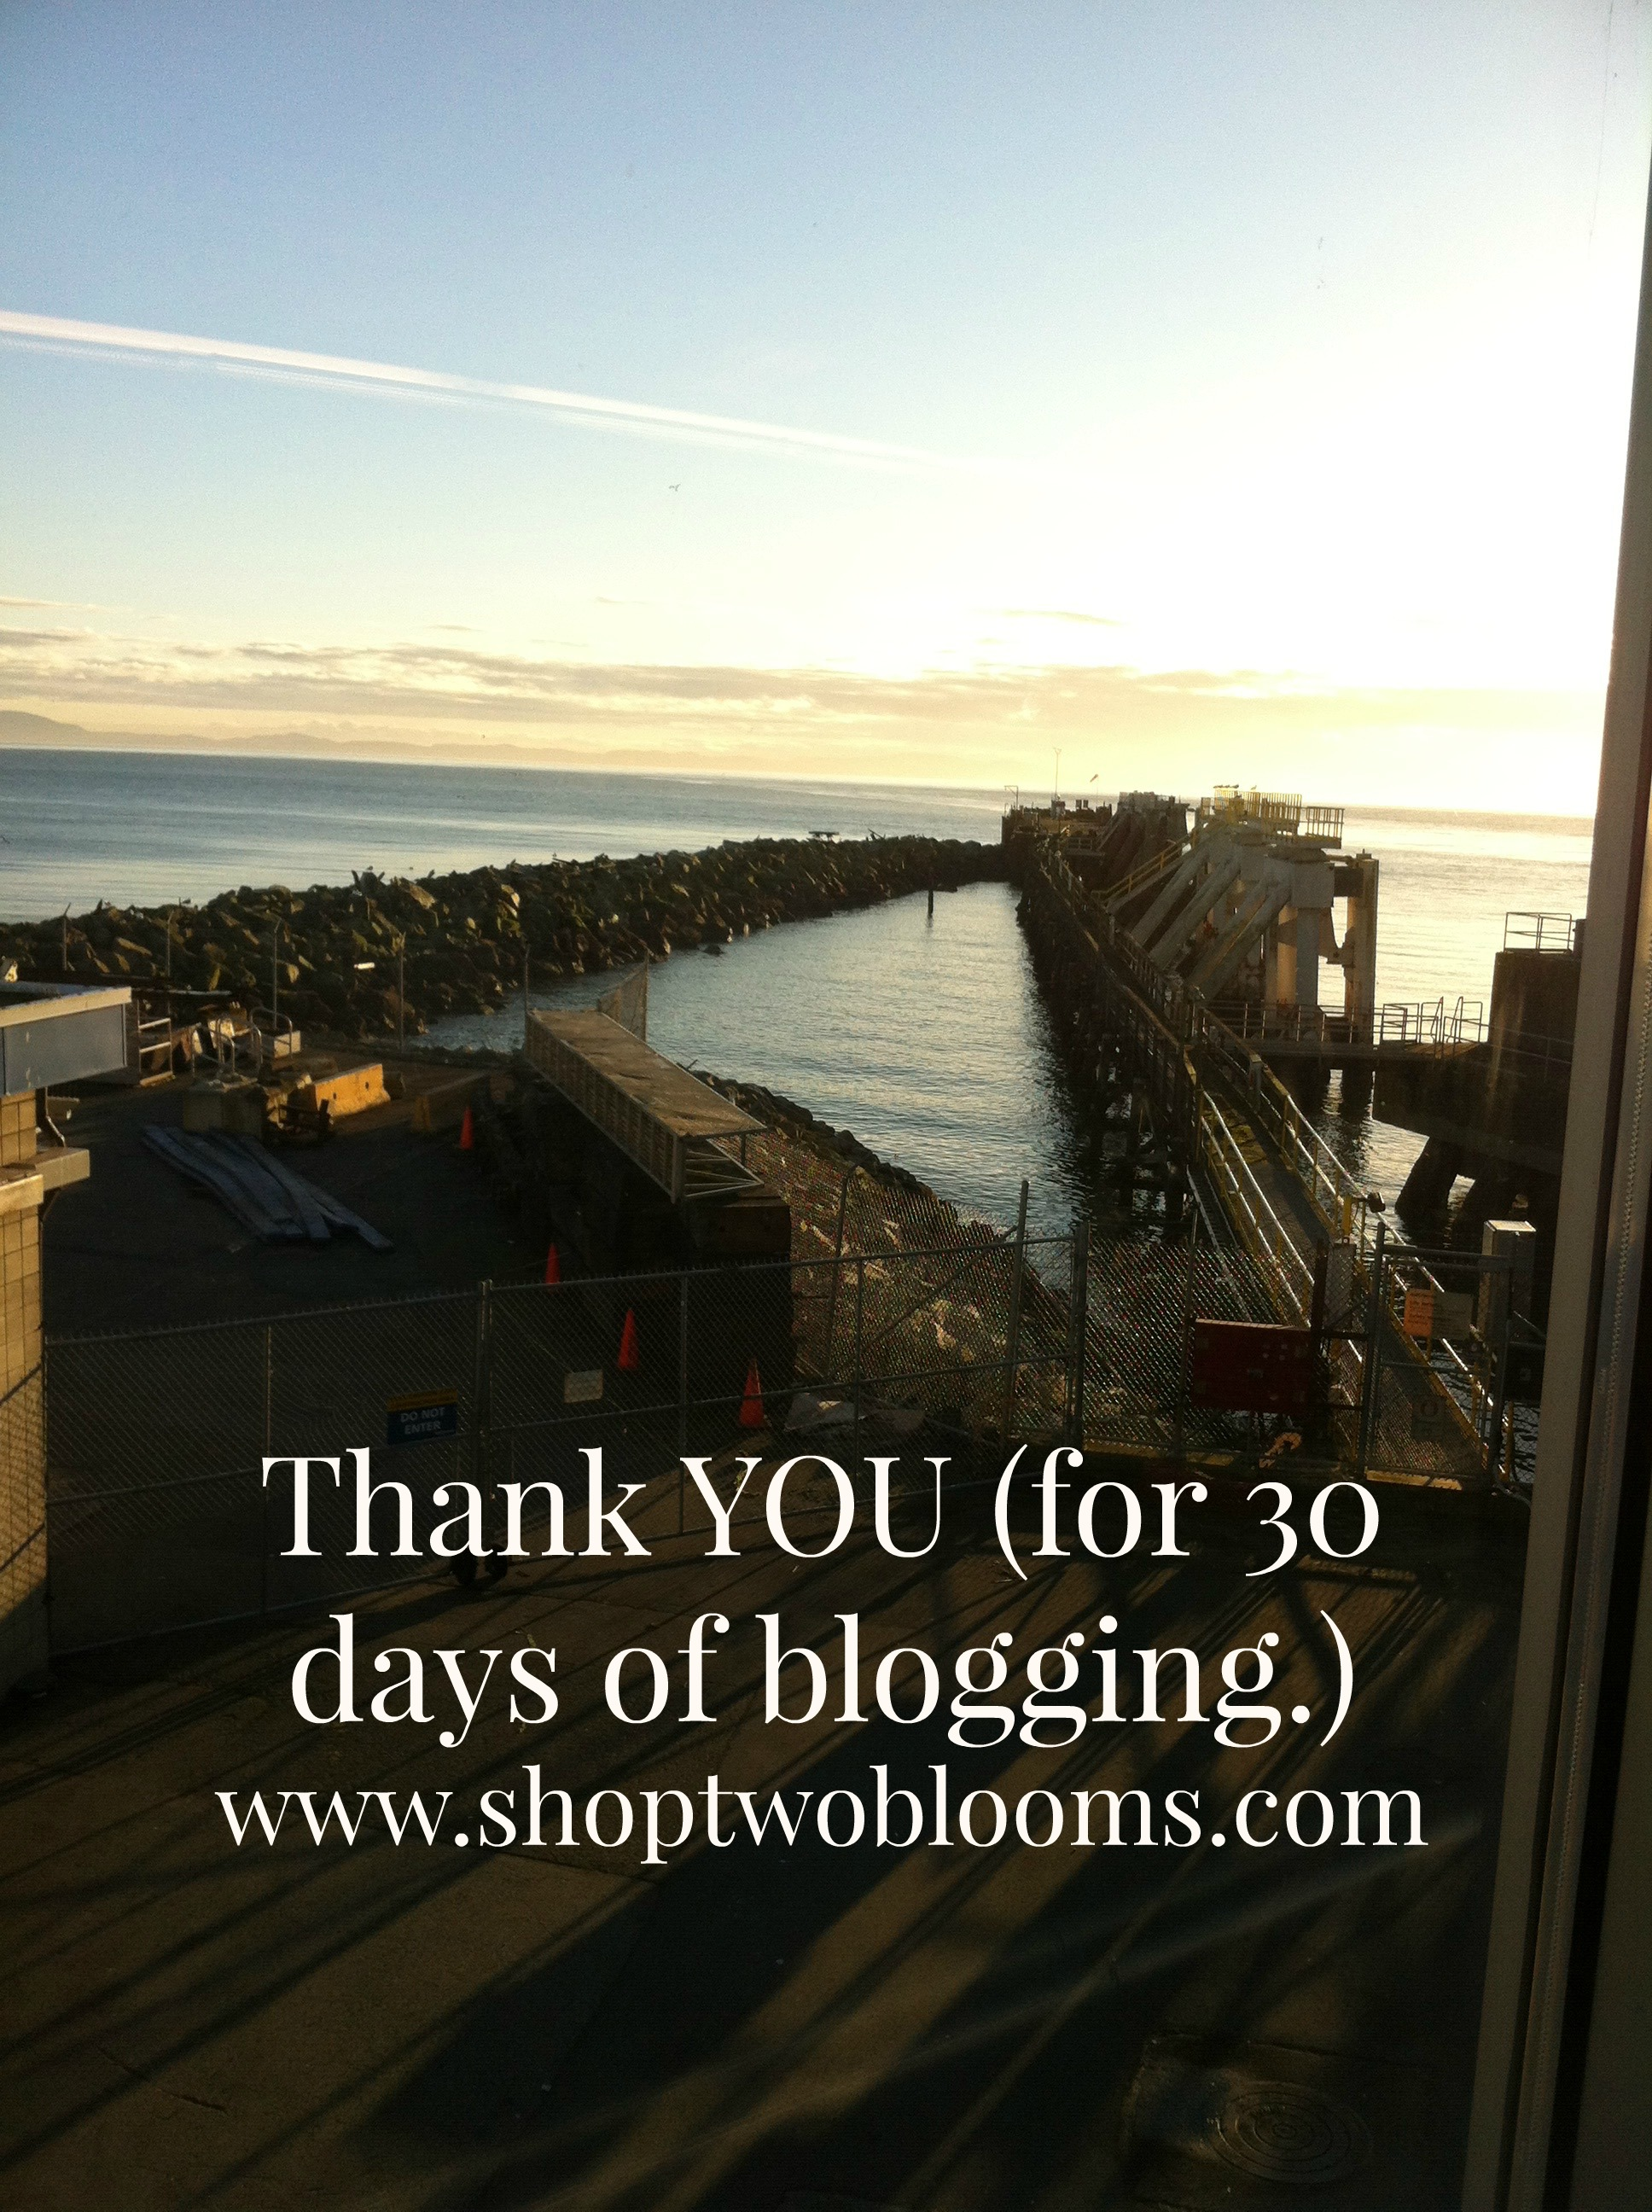 shoptwoblooms thank you.jpg